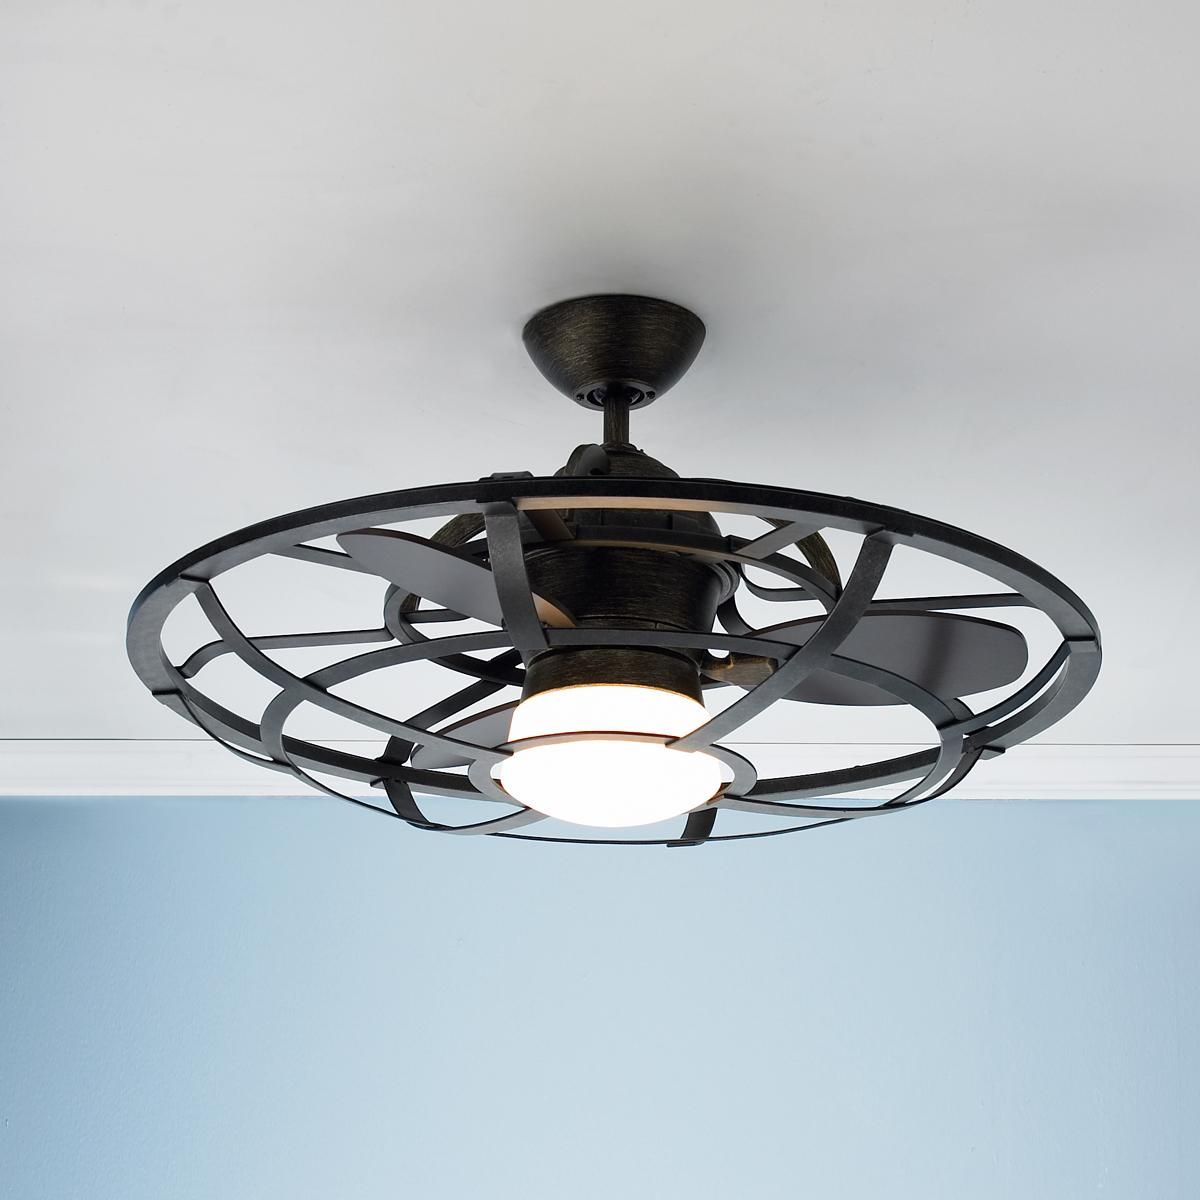 Industrial Style Ceiling Fans Industrial Cage Ceiling Fan Fun Whimsical Surprising Products